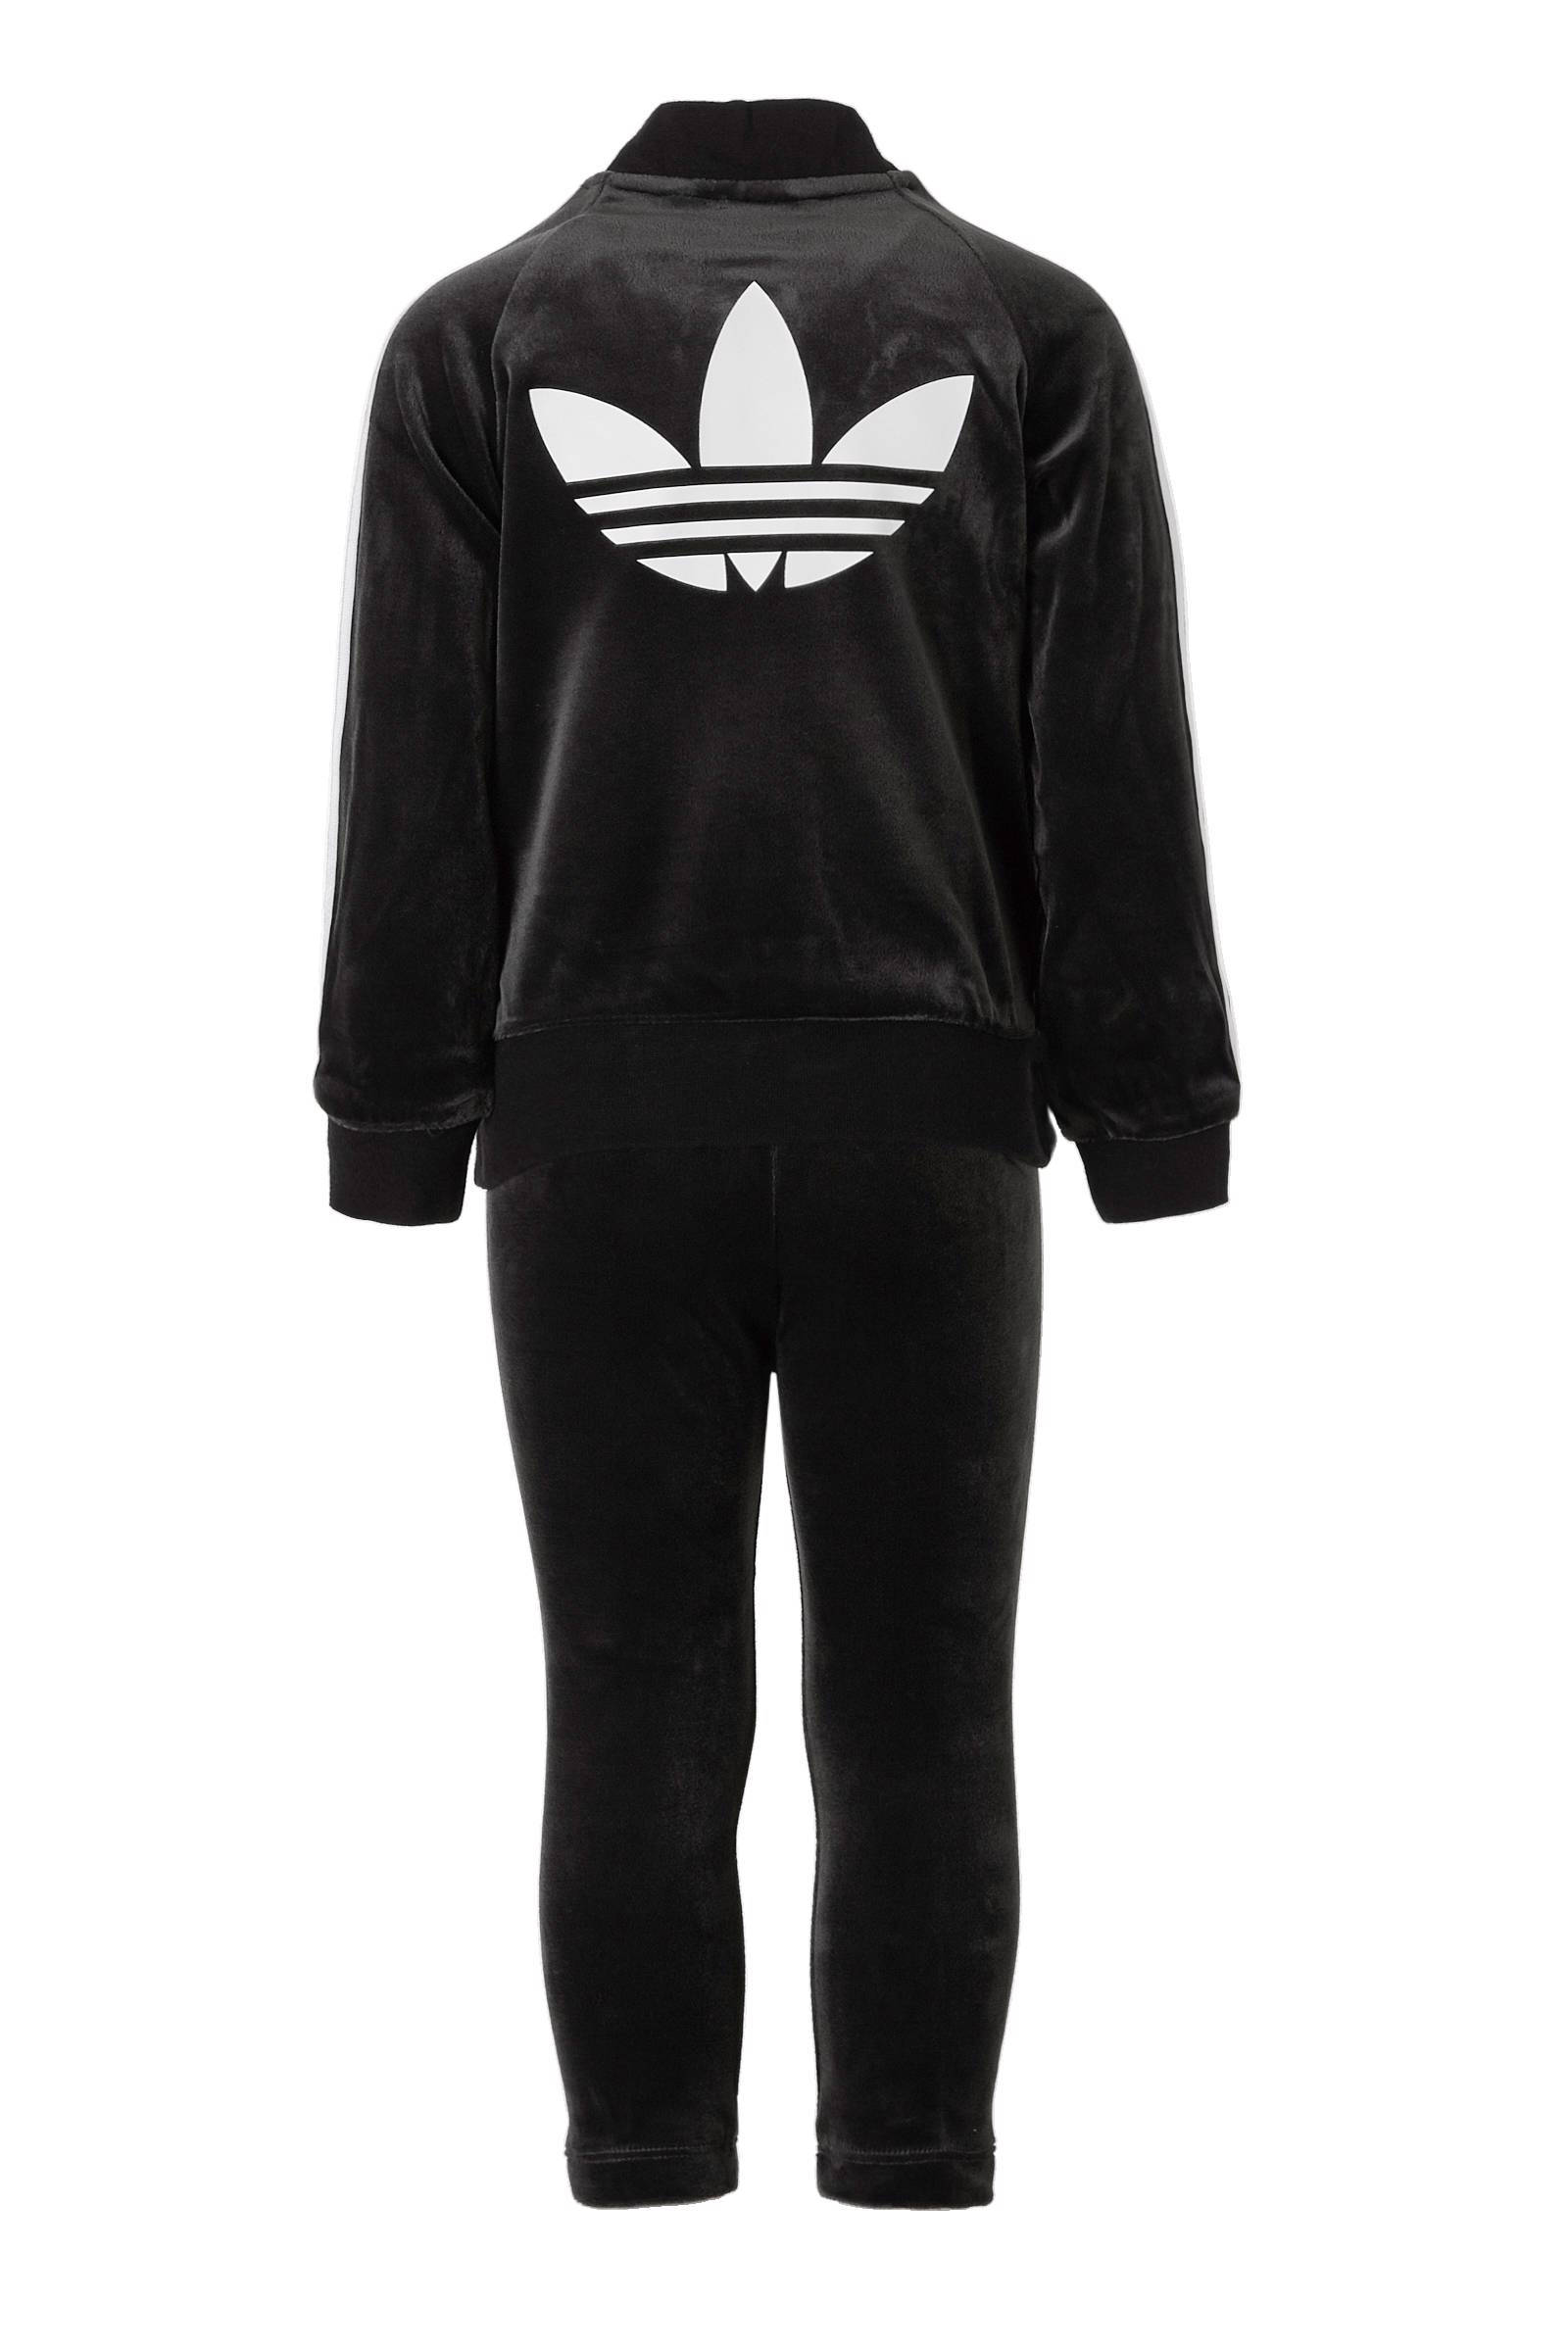 adidas Originals fluwelen trainingspak